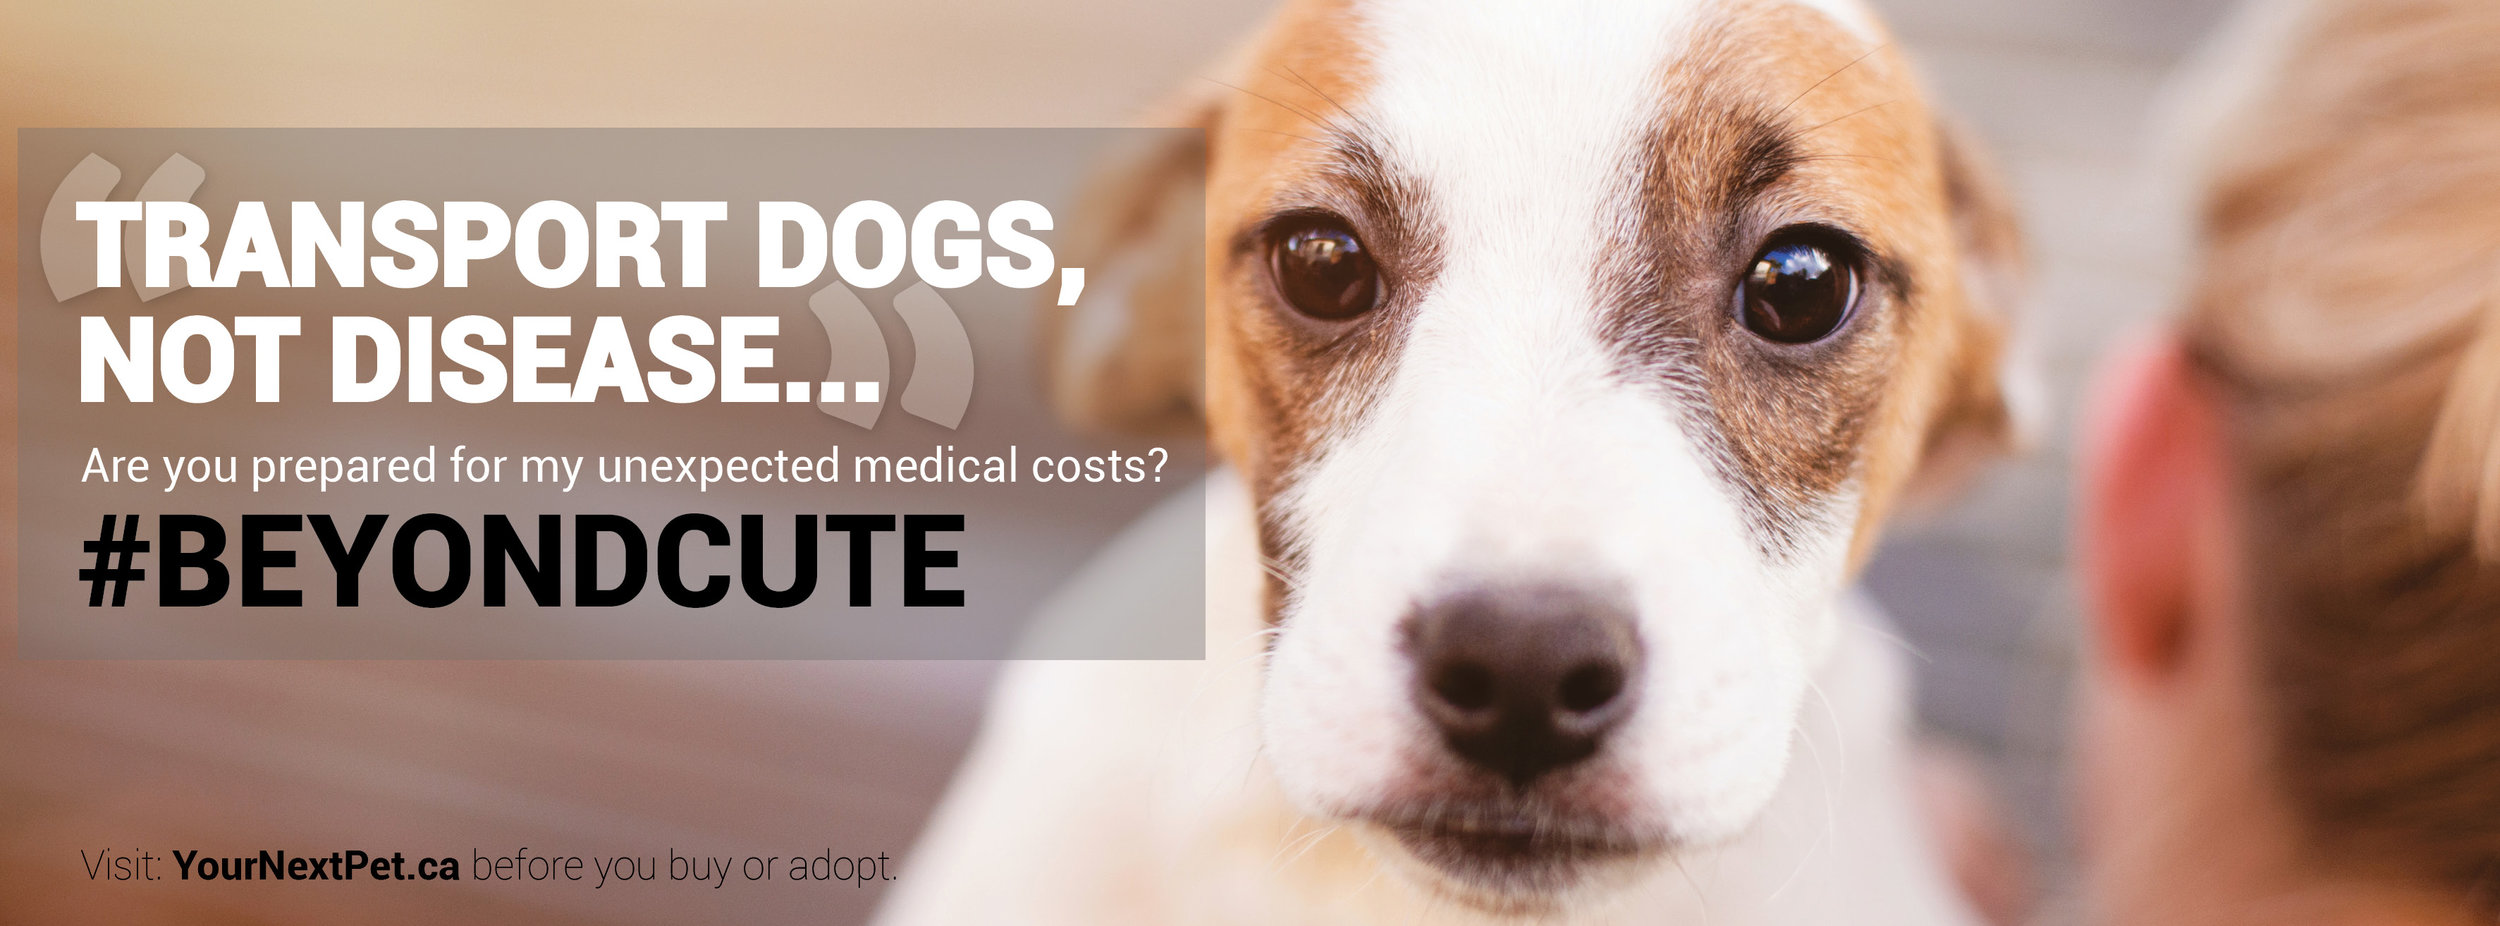 #BeyondCute Facebook Banner - BLOCKING Transport Dogs Not Disease - FINAL 2019.jpg